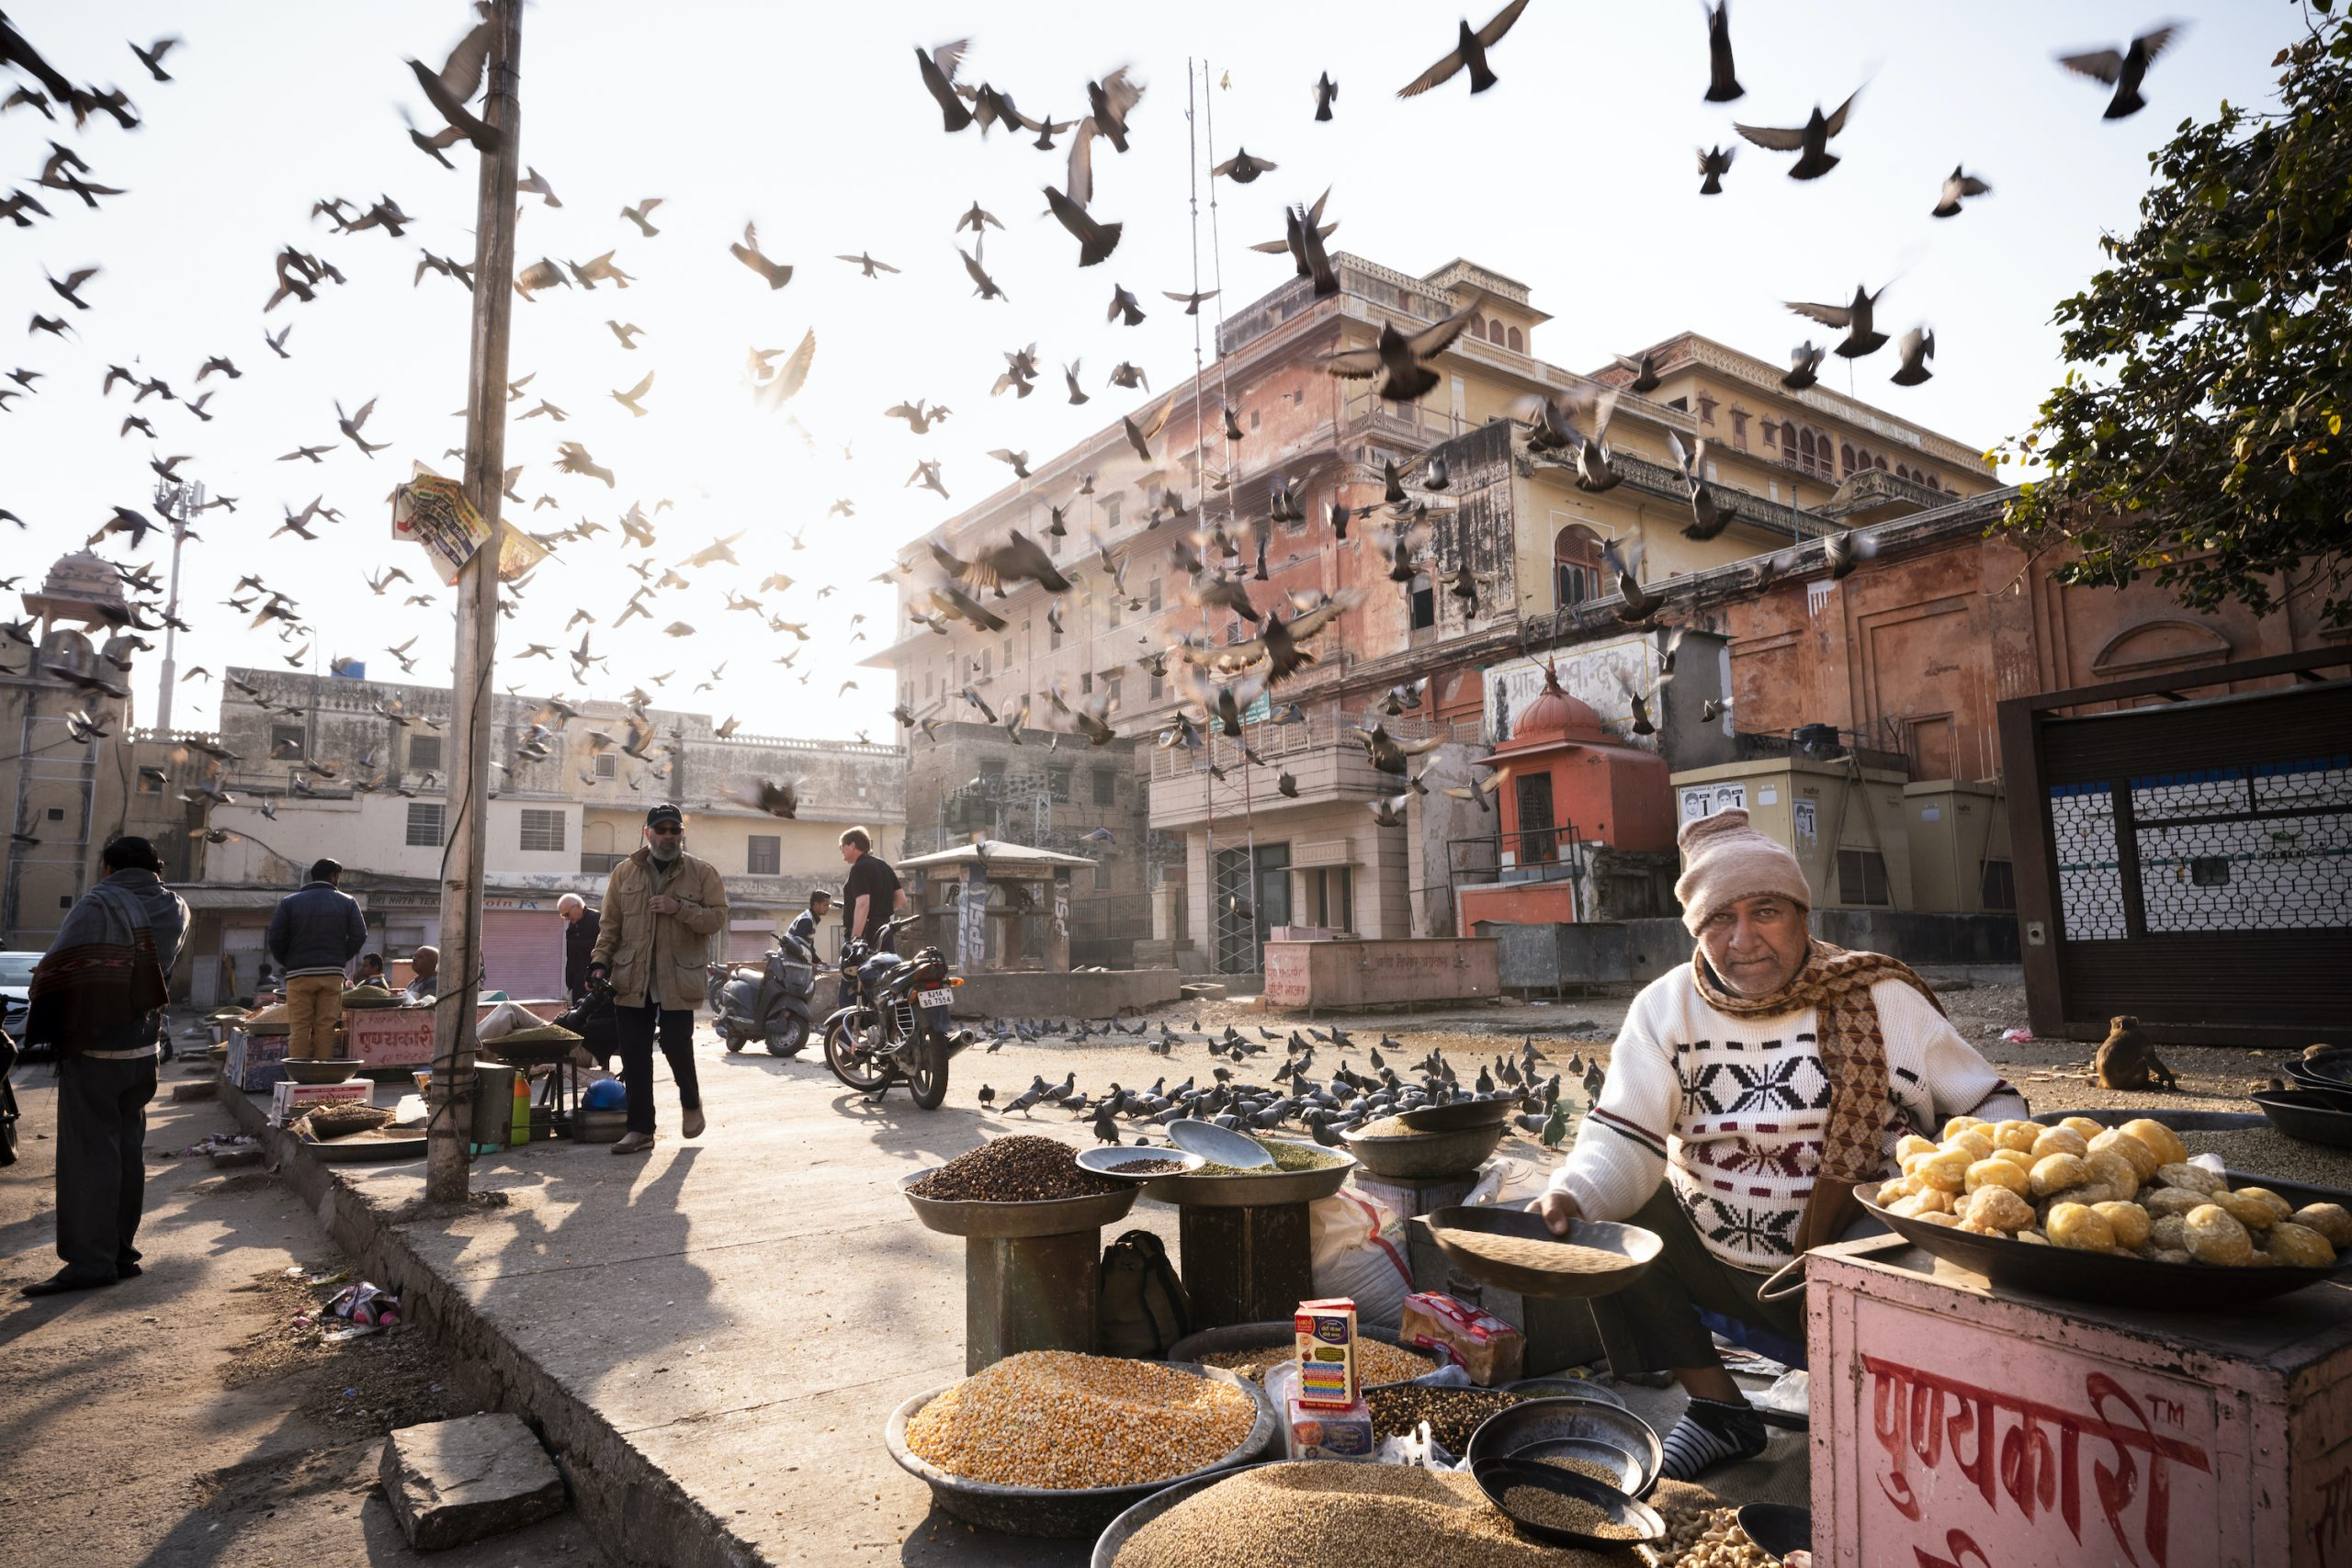 color street photography of man and pigeons in Jaipur, India